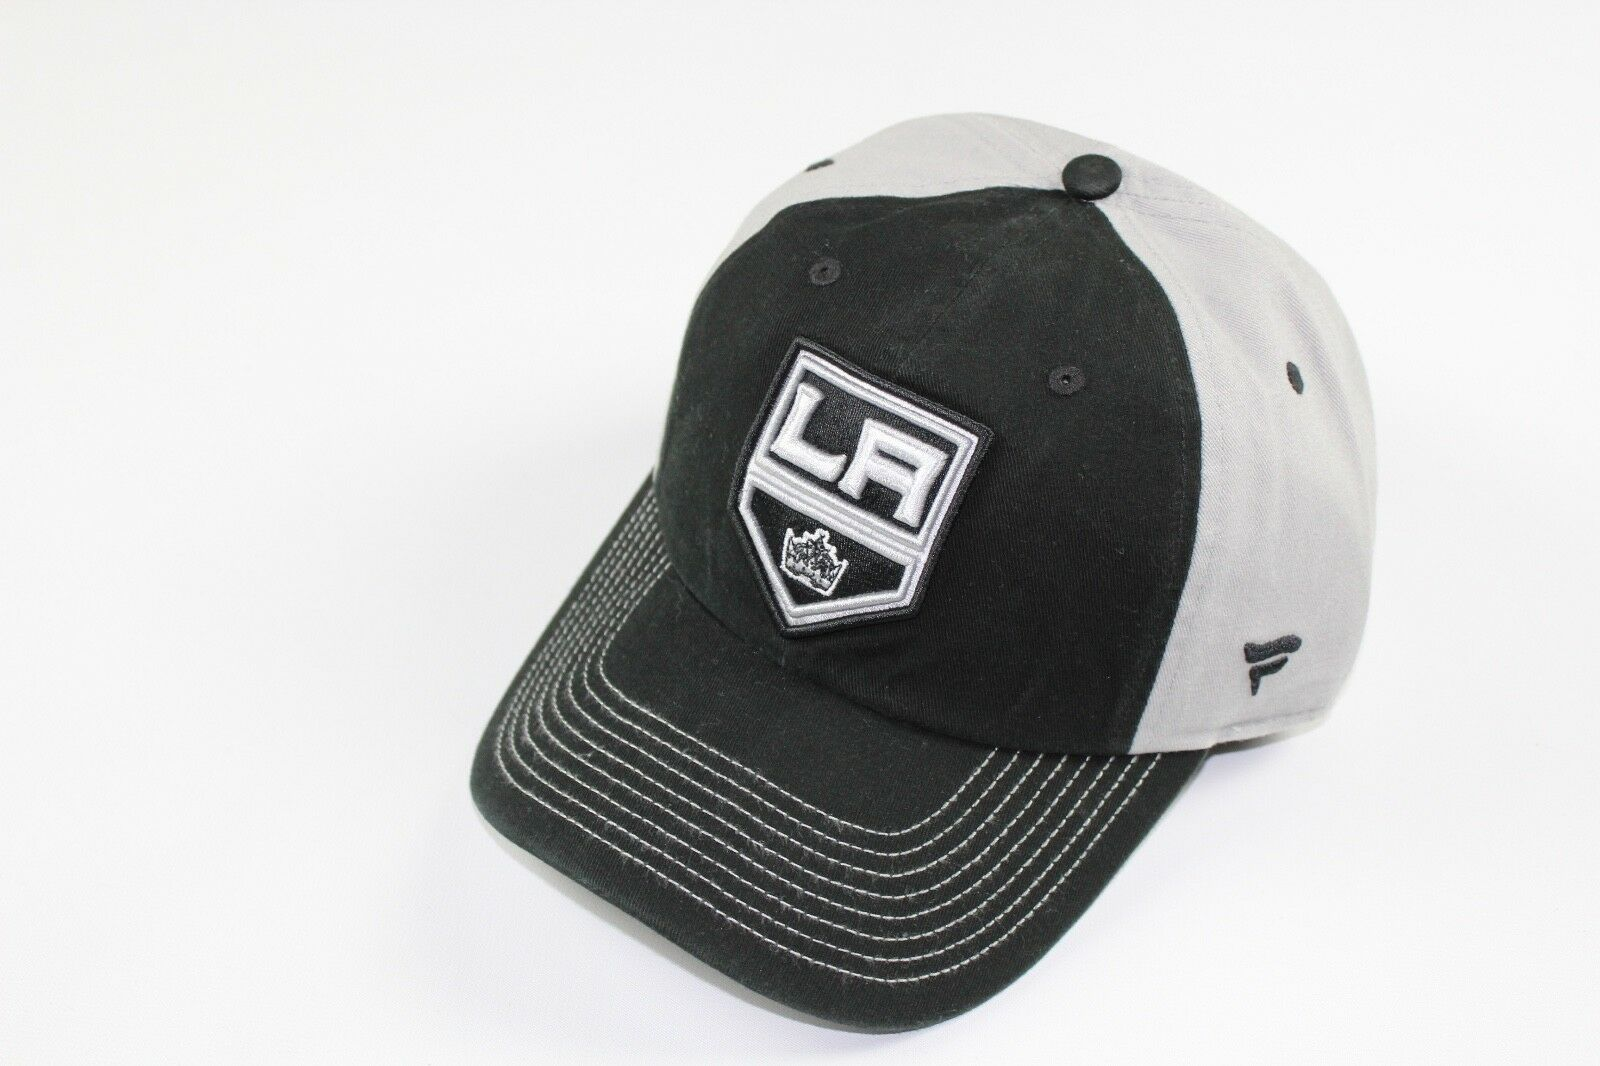 outlet store sale 9163c 4915e ... snapback adjustable hat 13547 db7f6  promo code new sample fanatics la  kings los angeles kings nhl hockey side spell out nhl